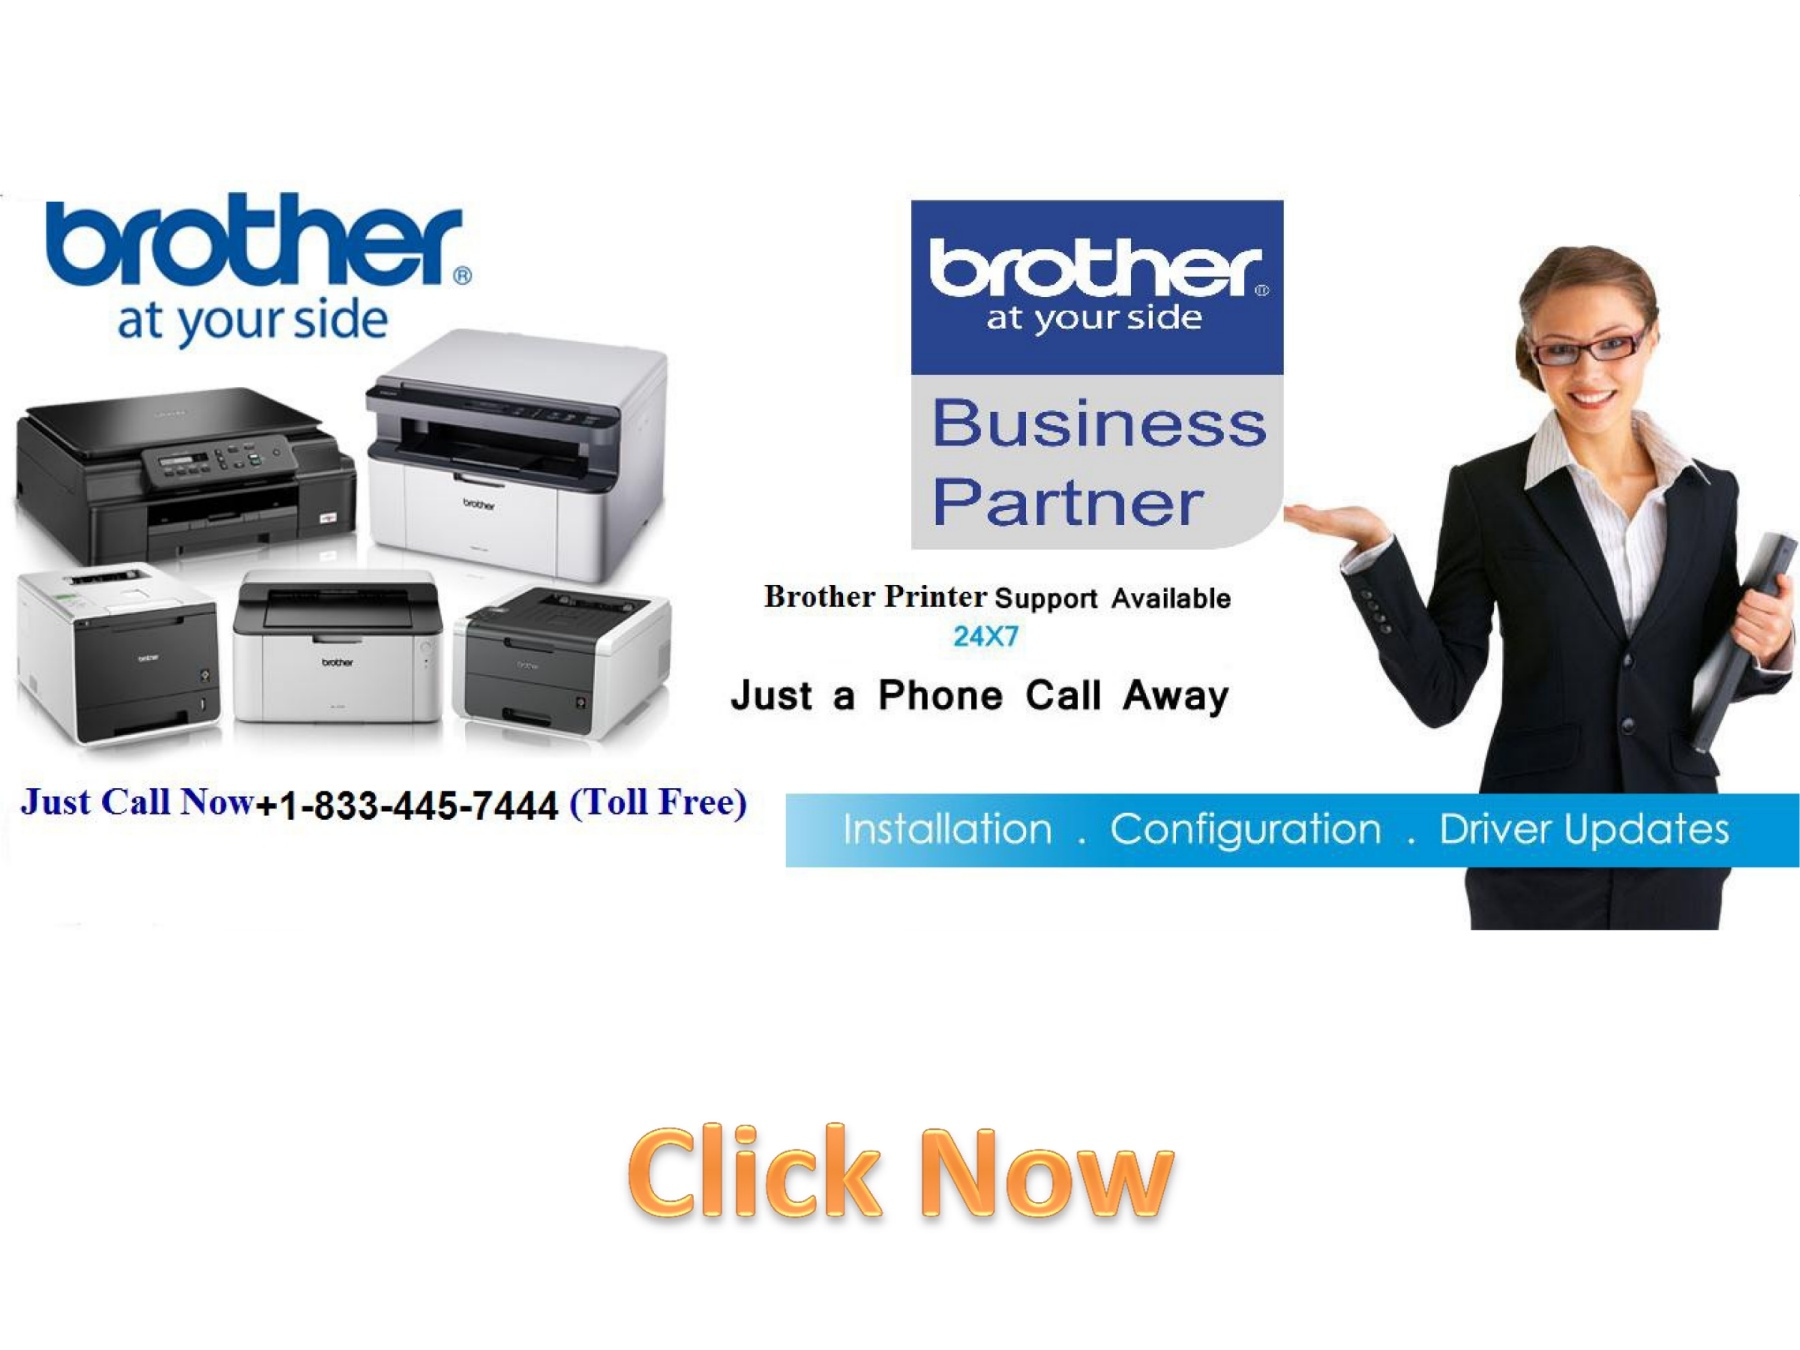 Our Brother Printer Technical Support Helpline Number (+1-833-445